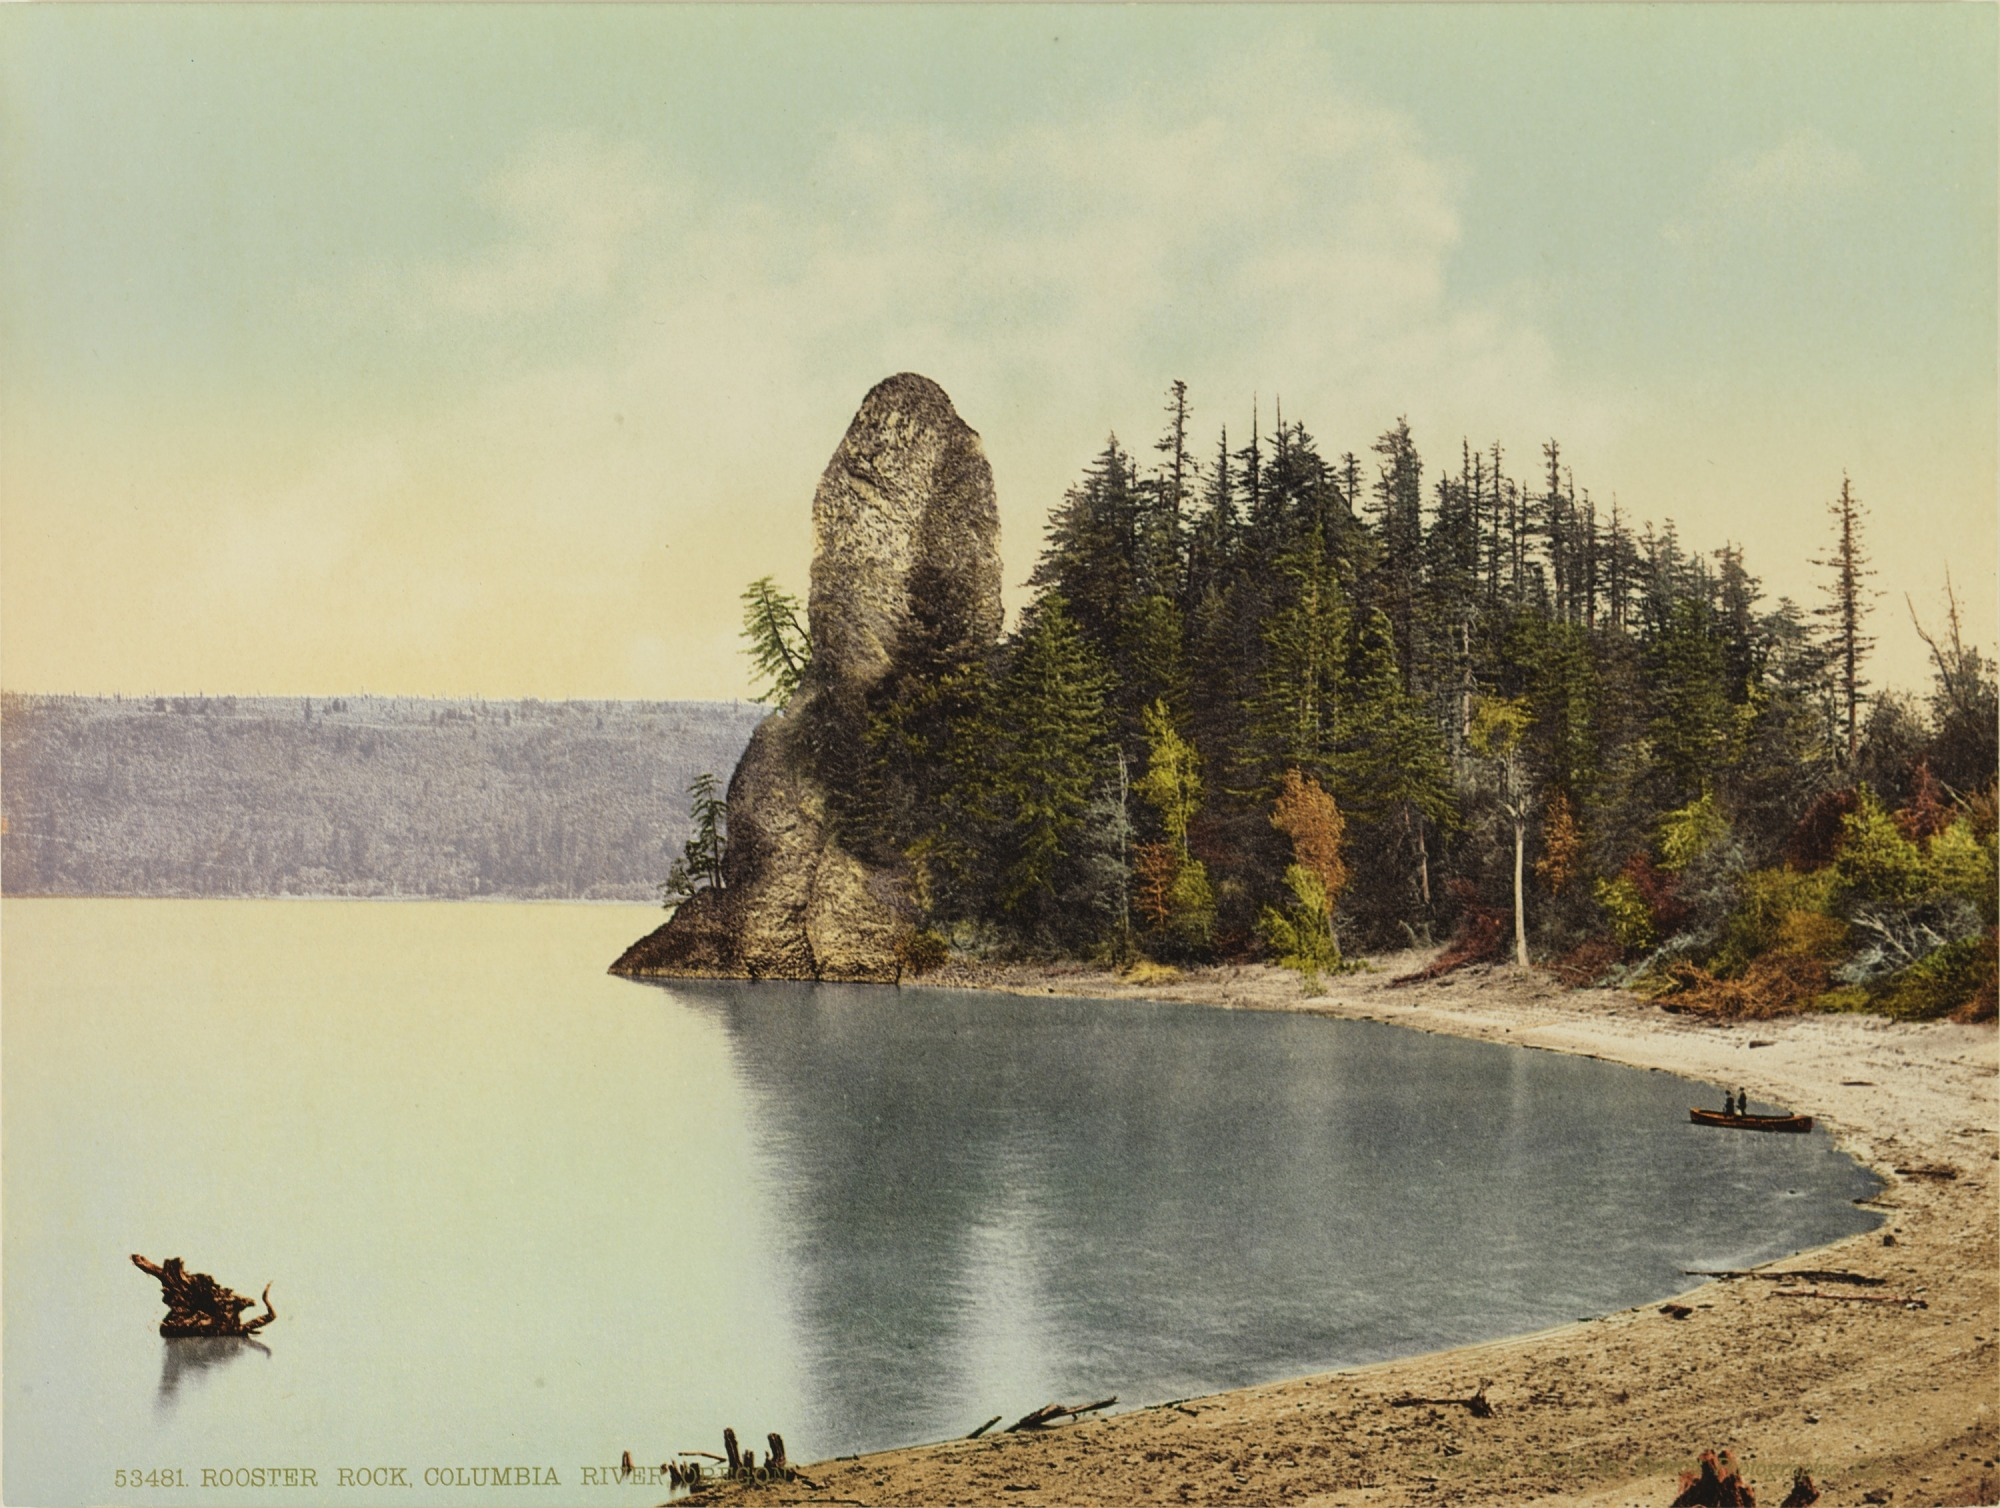 Rooster Rock, Columbia River, Oregon